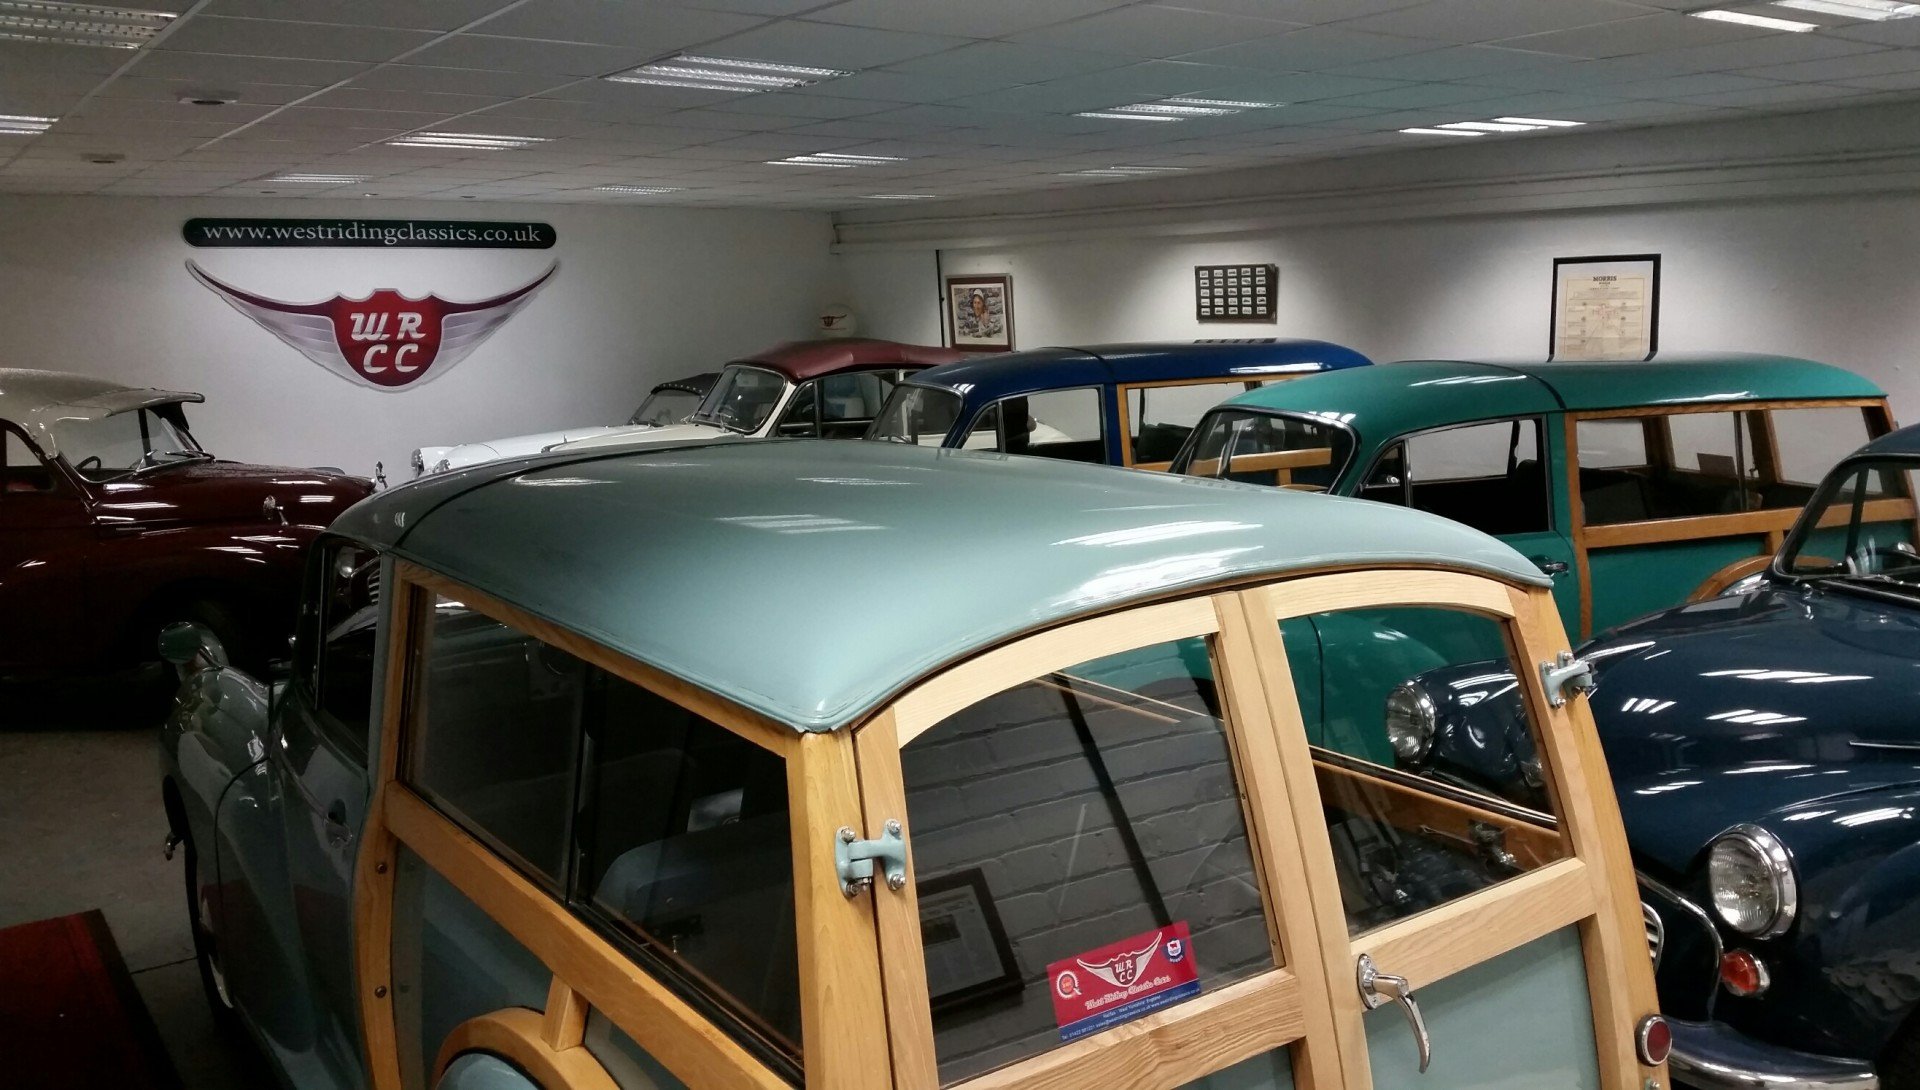 West Riding Classic Cars New Showroom